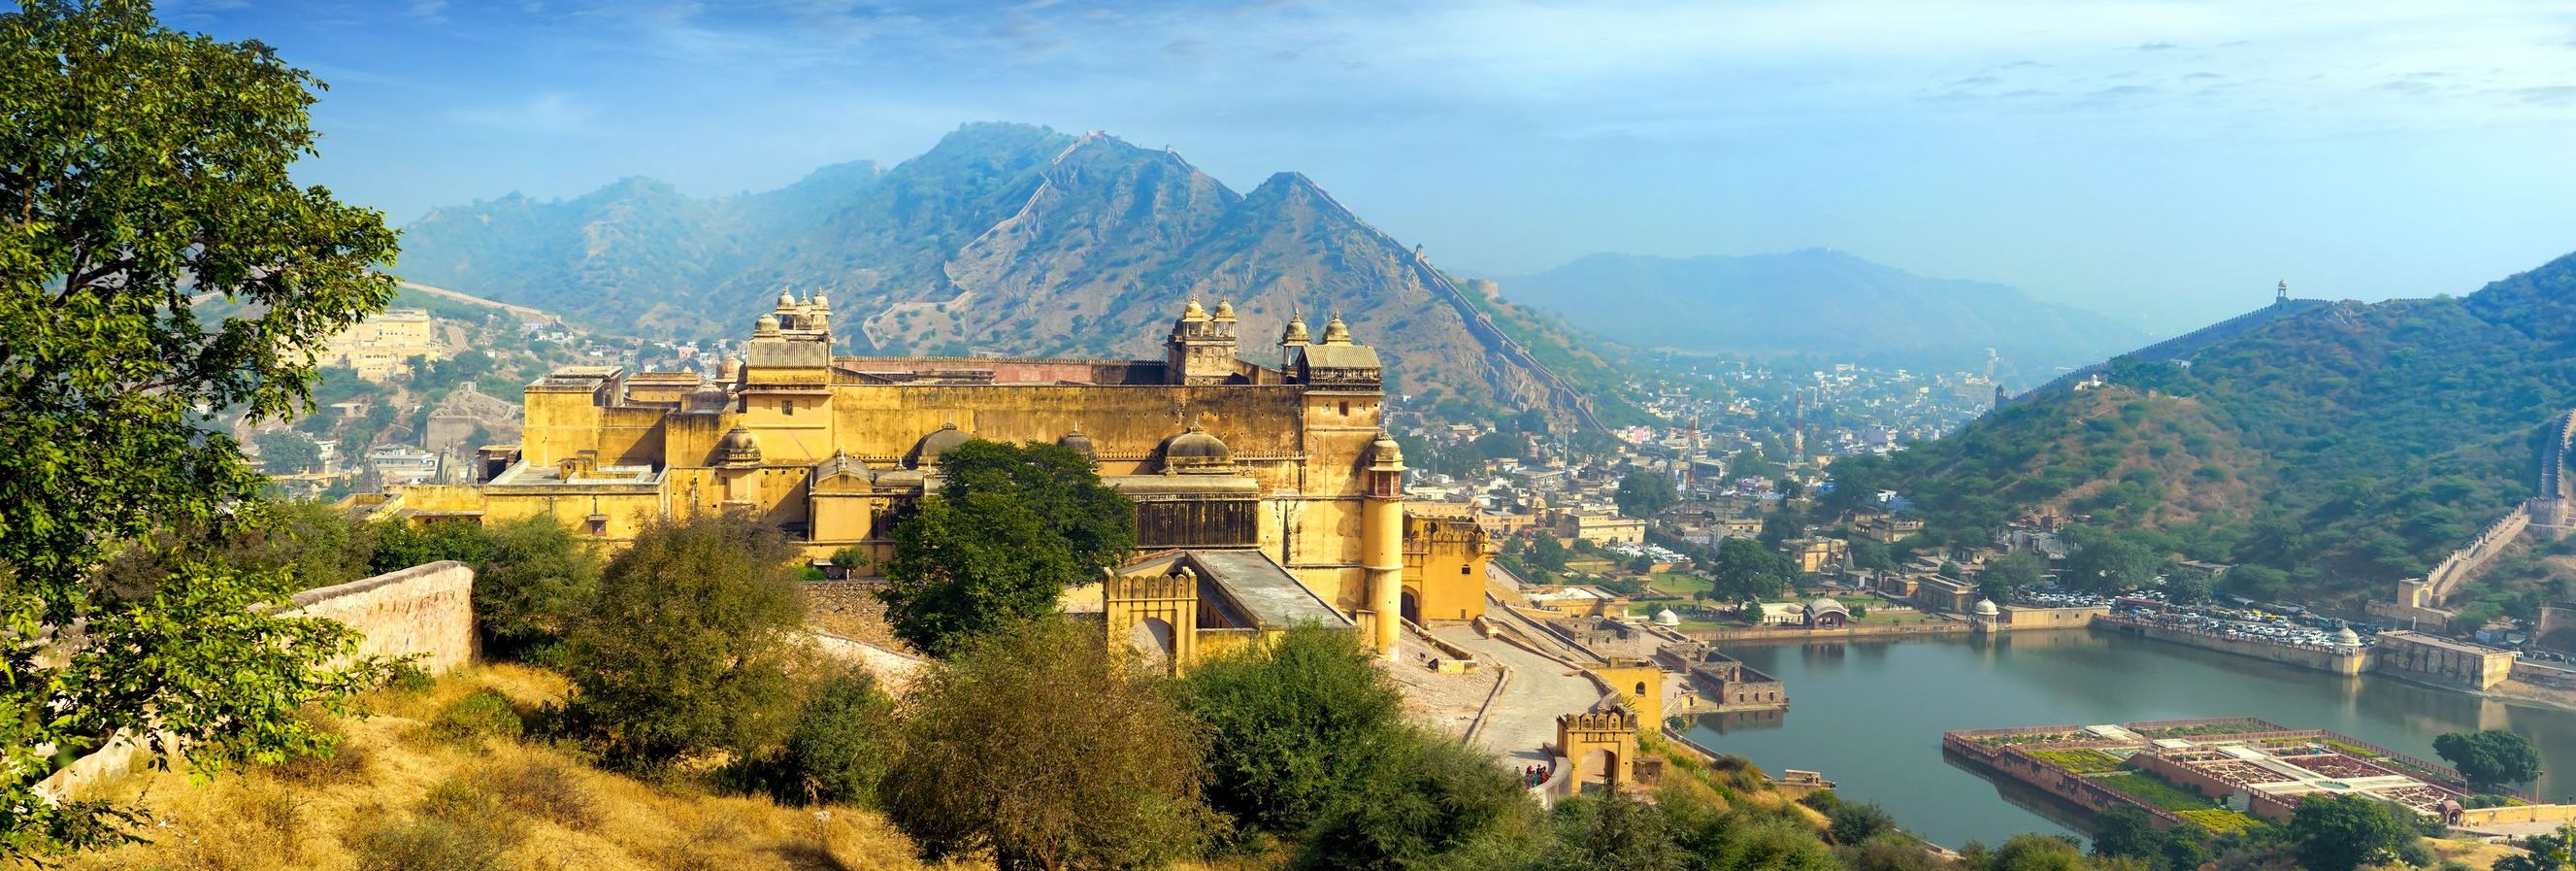 jaipur-view-from-amber-palace